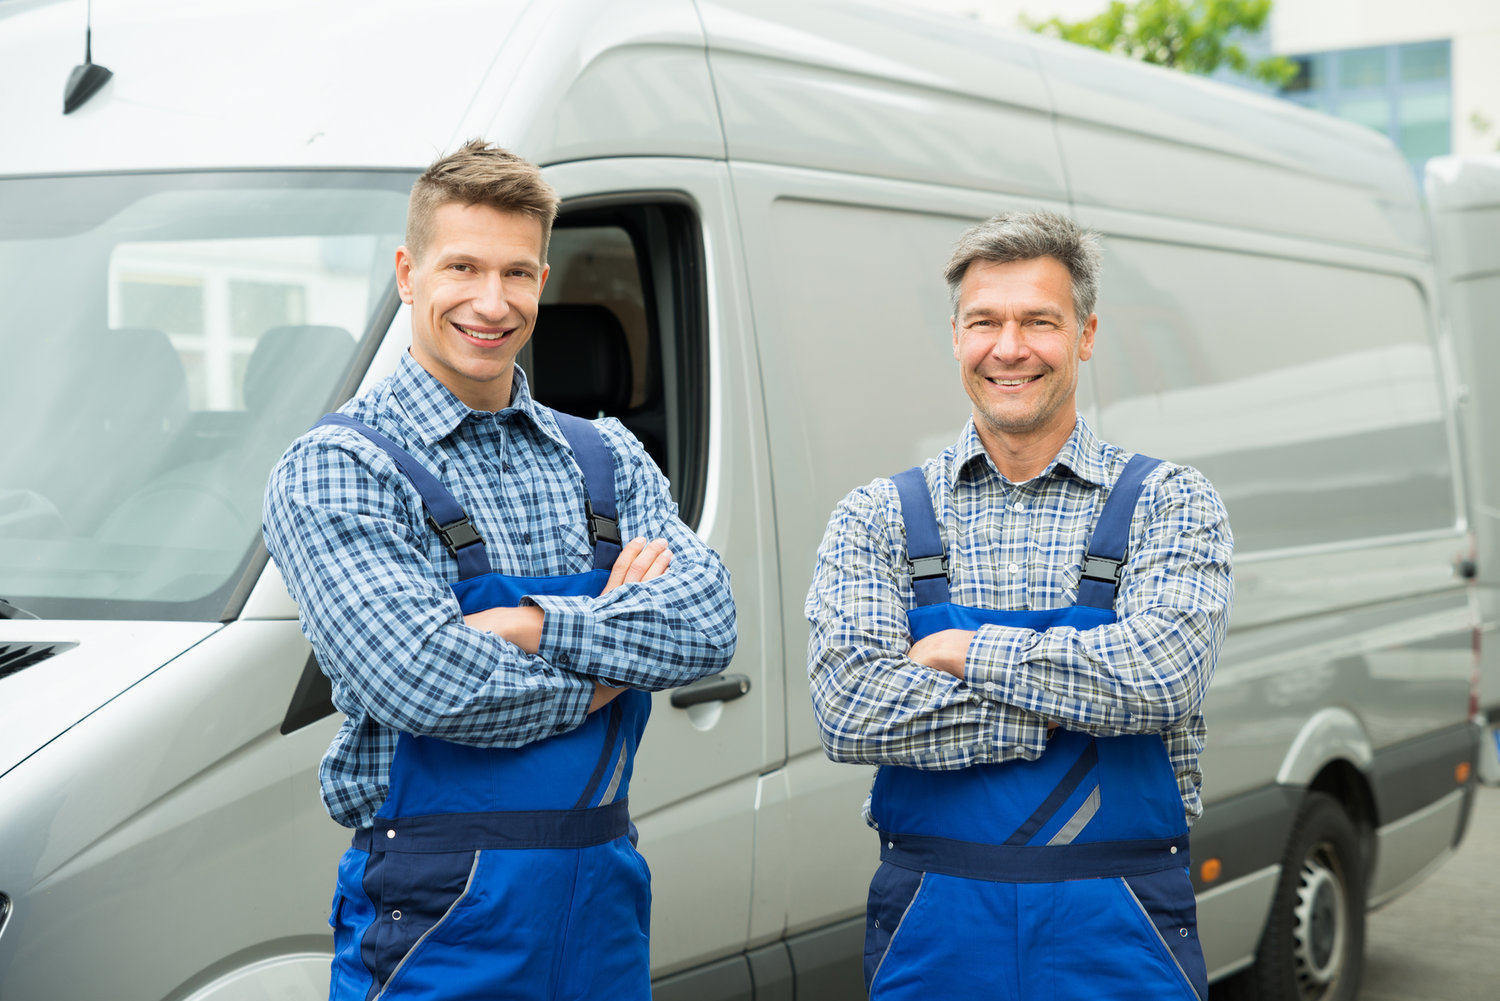 Ecowater service